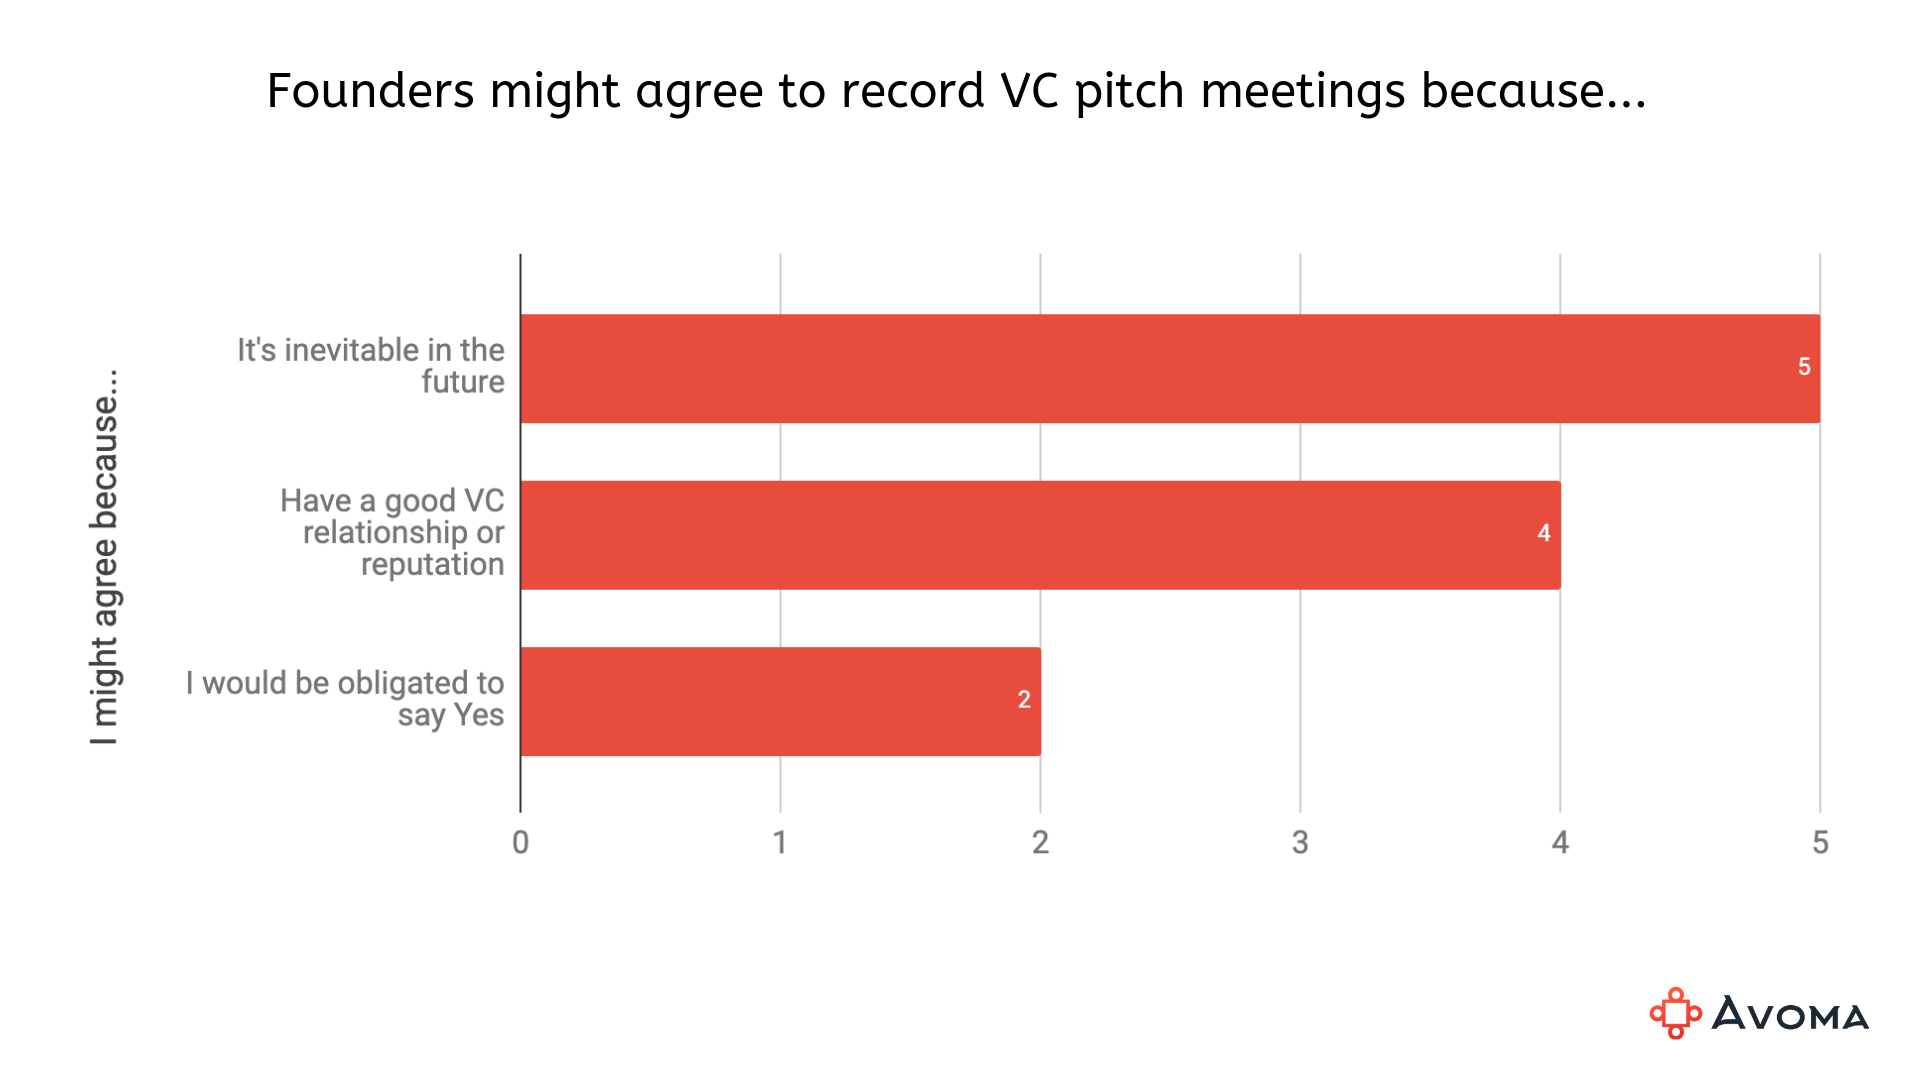 Founders might agree recording their VC pitch meetings